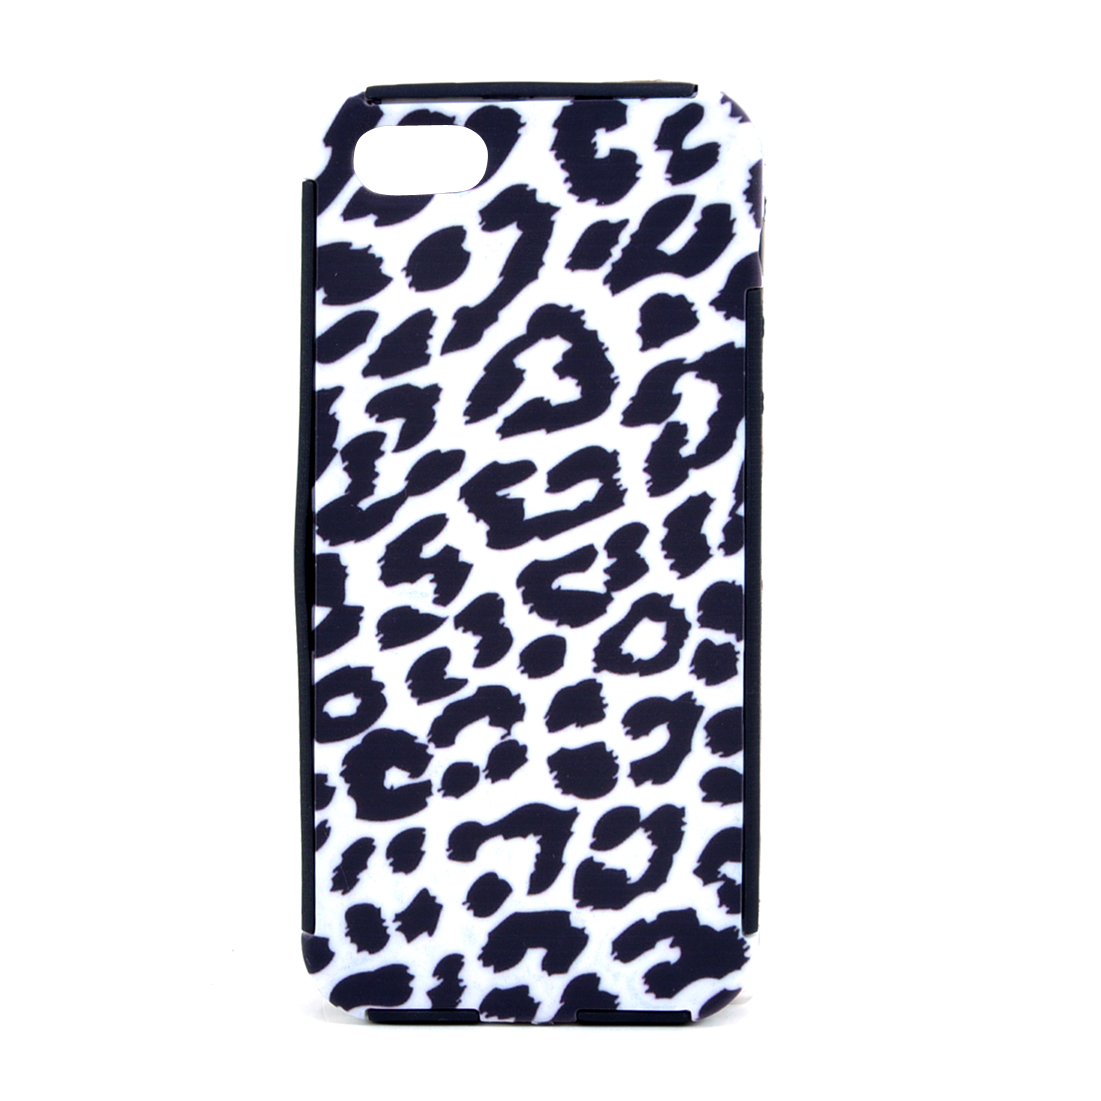 Dasein® Leopard Print iPhone 5 5s 5g Phone Case